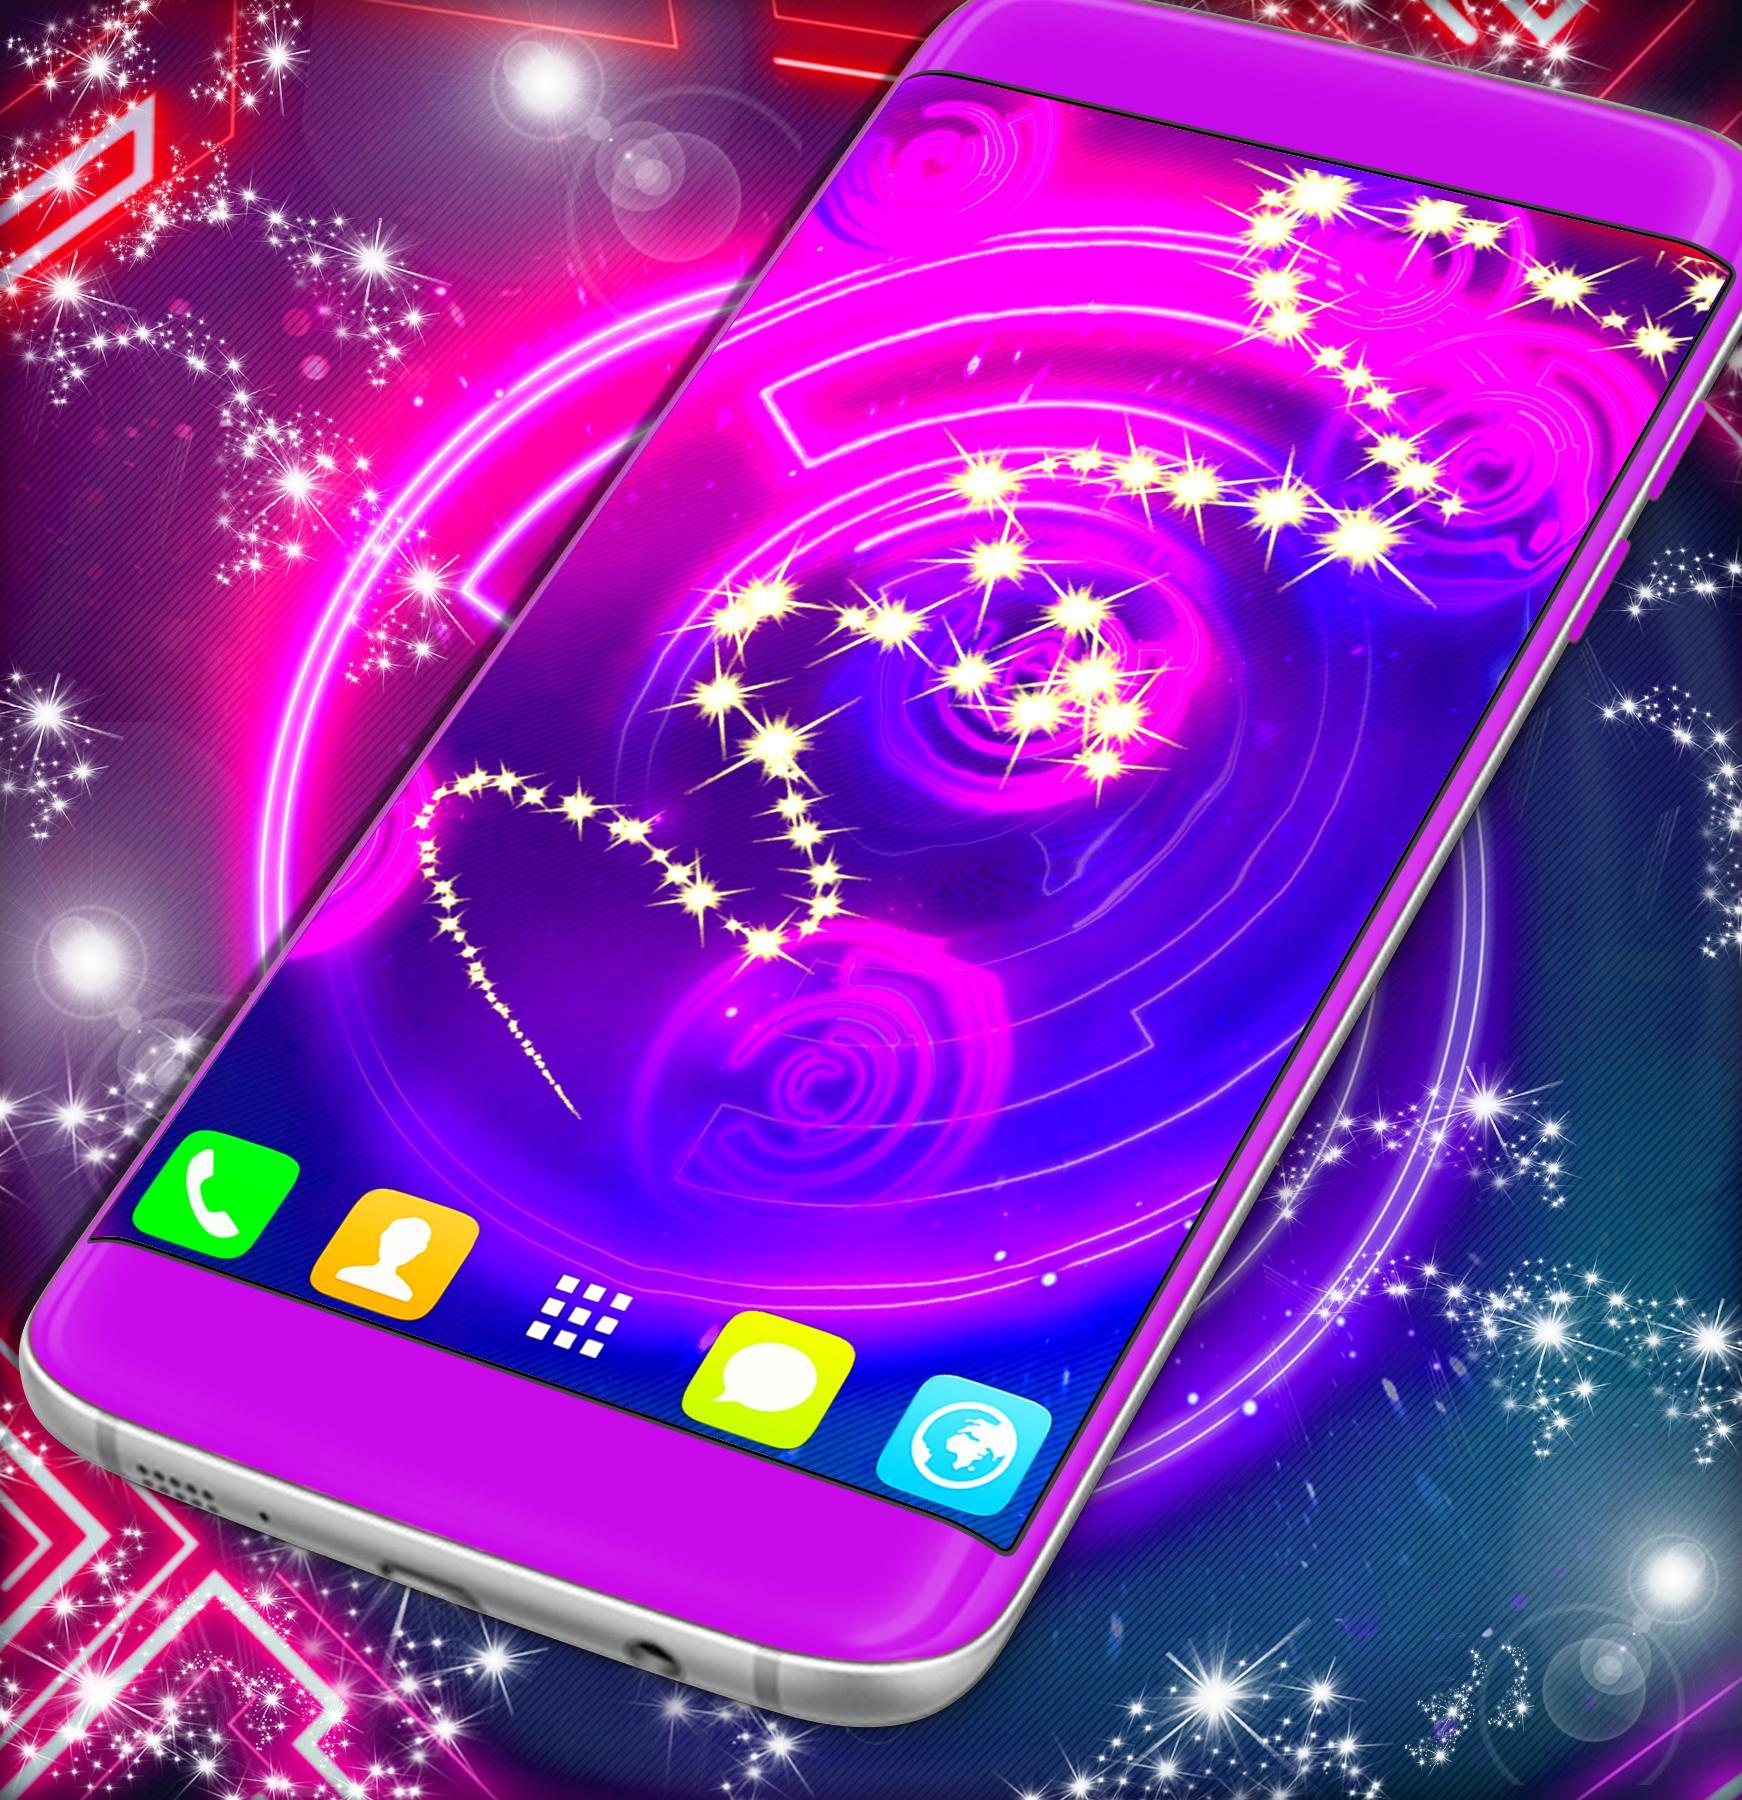 LED Live Wallpaper for Android - APK Download